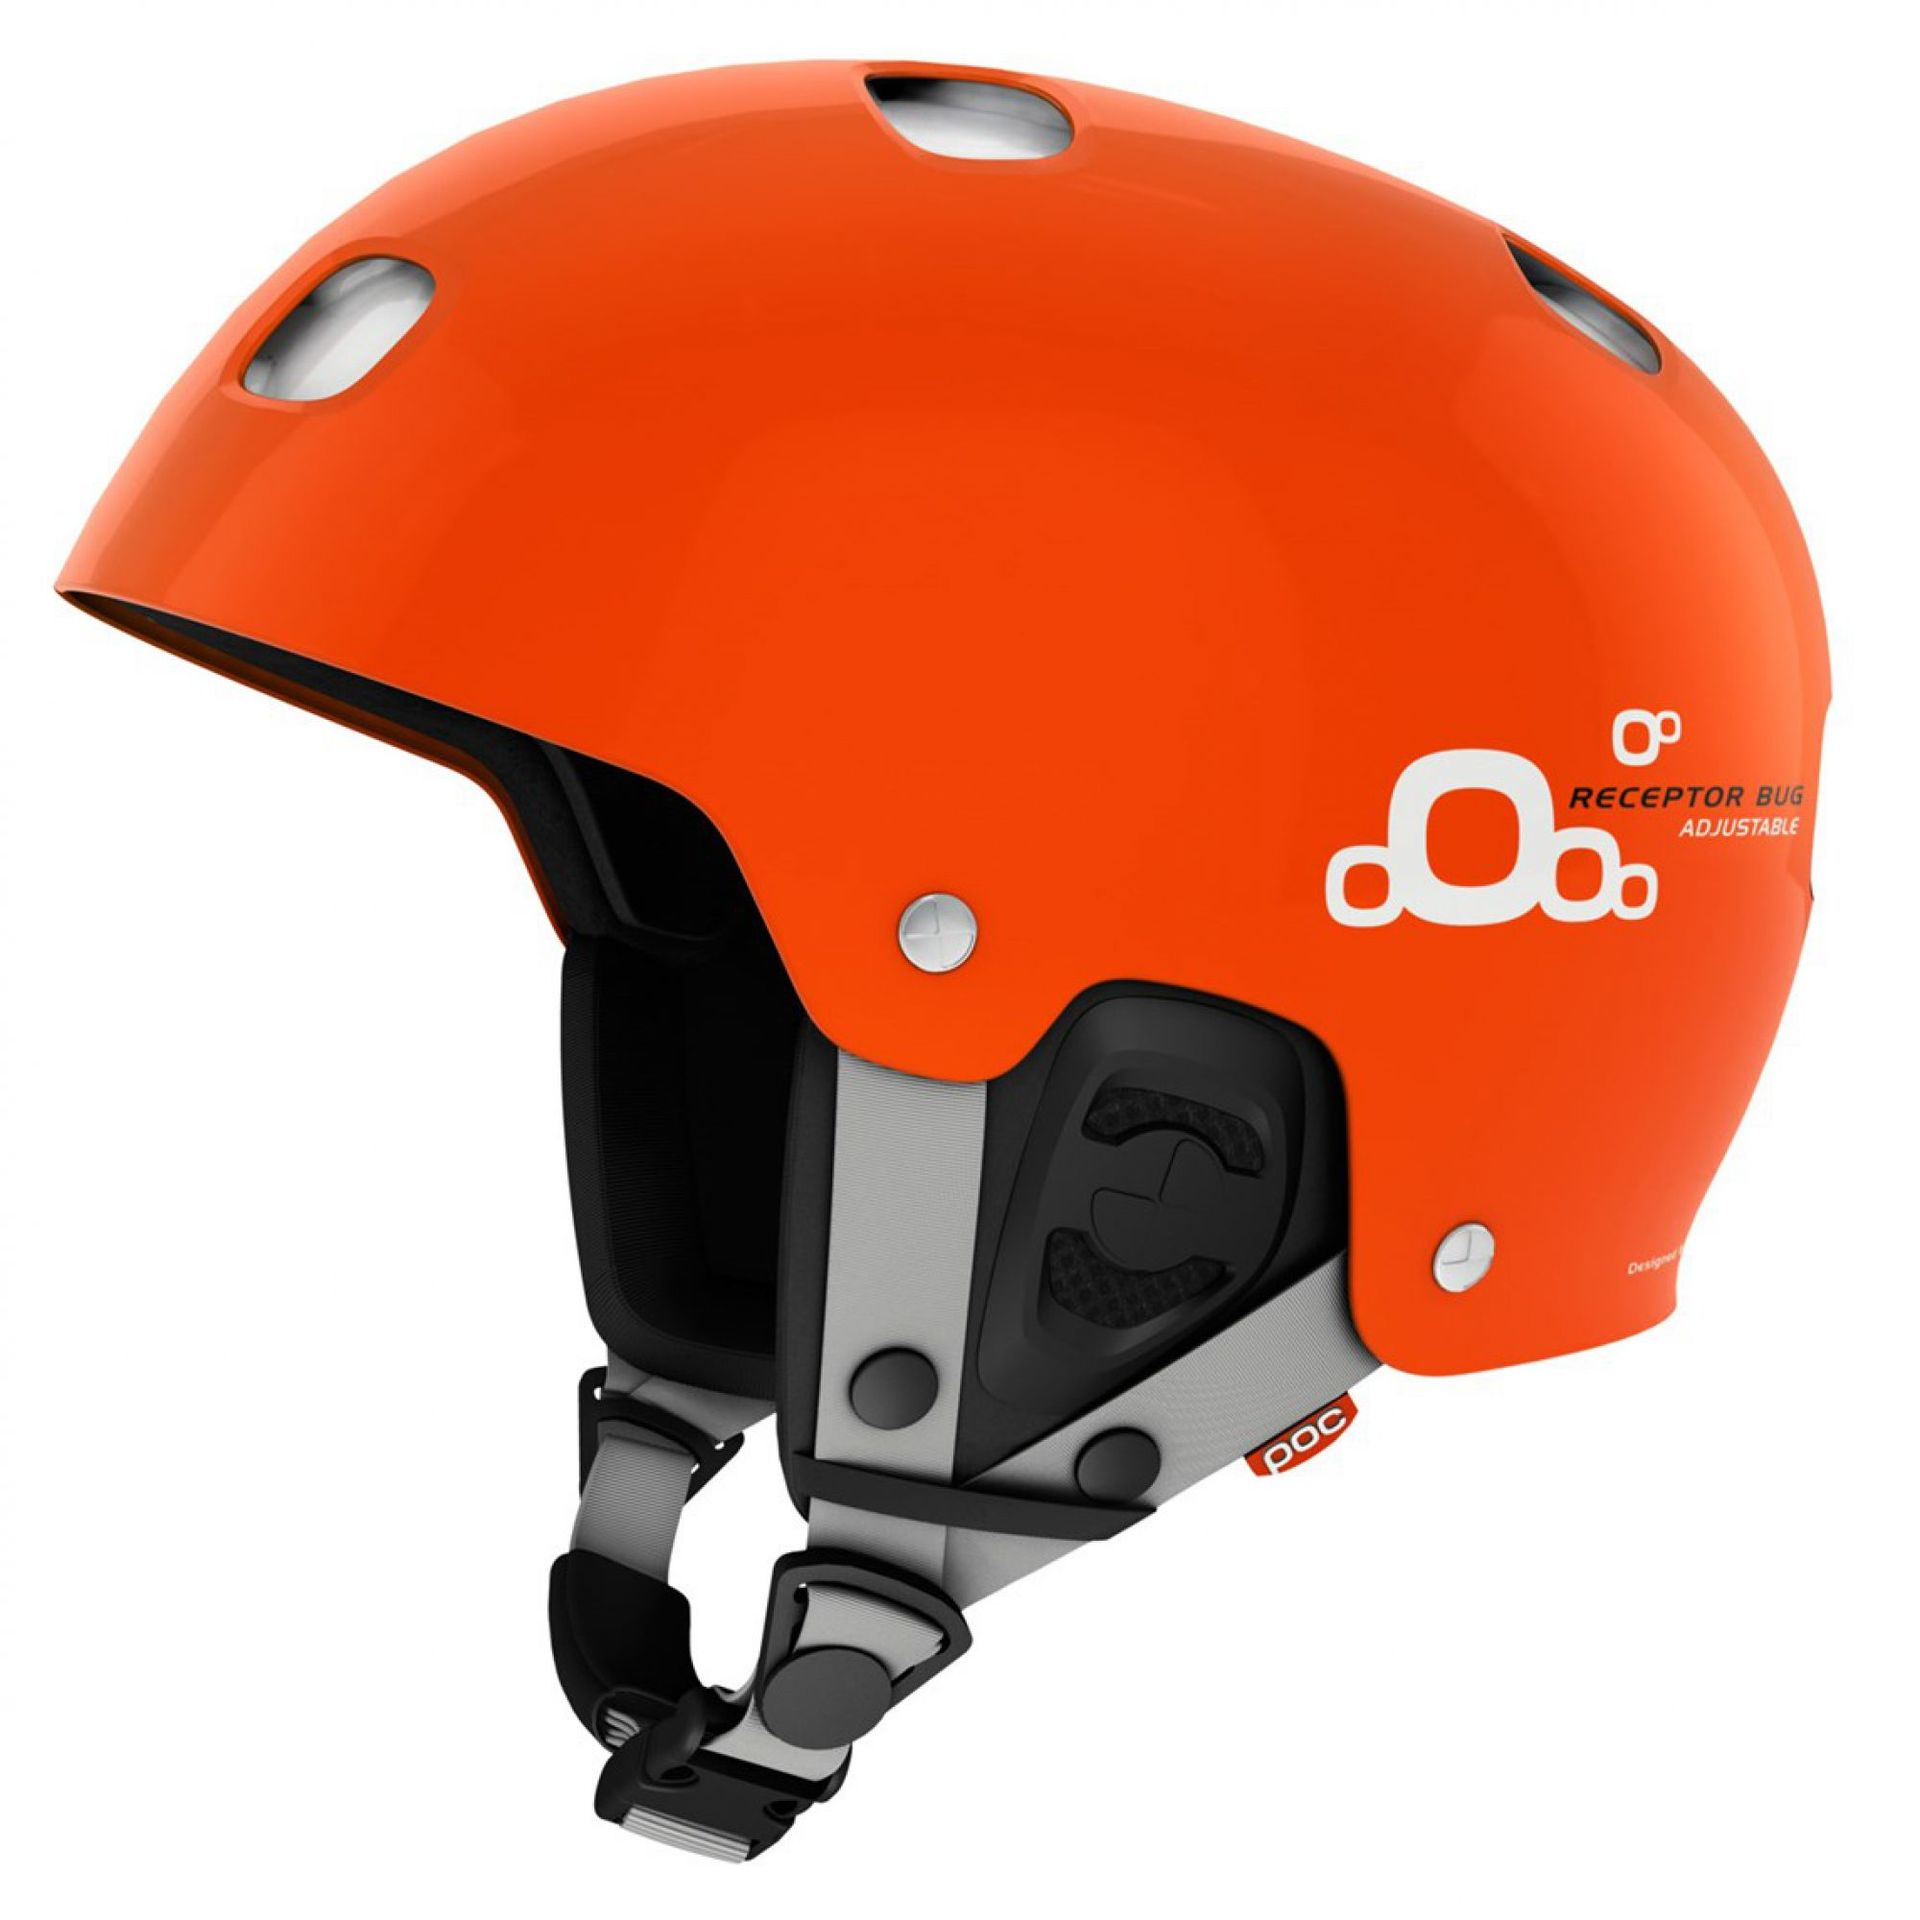 KASK POC RECEPTOR BUG ADJUSTABLE 2.0 IRON ORANGE